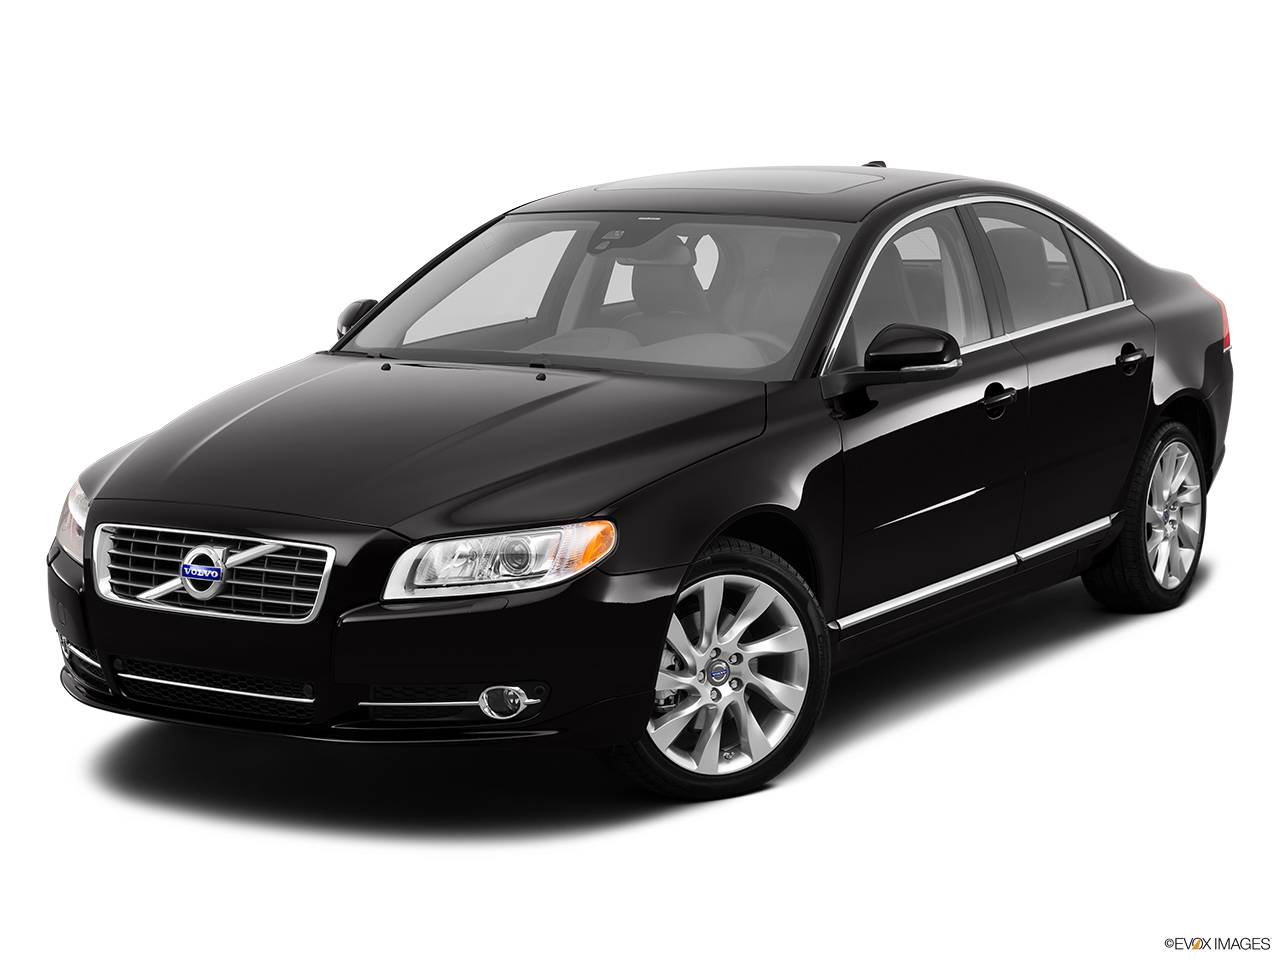 2013 Volvo S80 3.2 Platinum Front angle view.